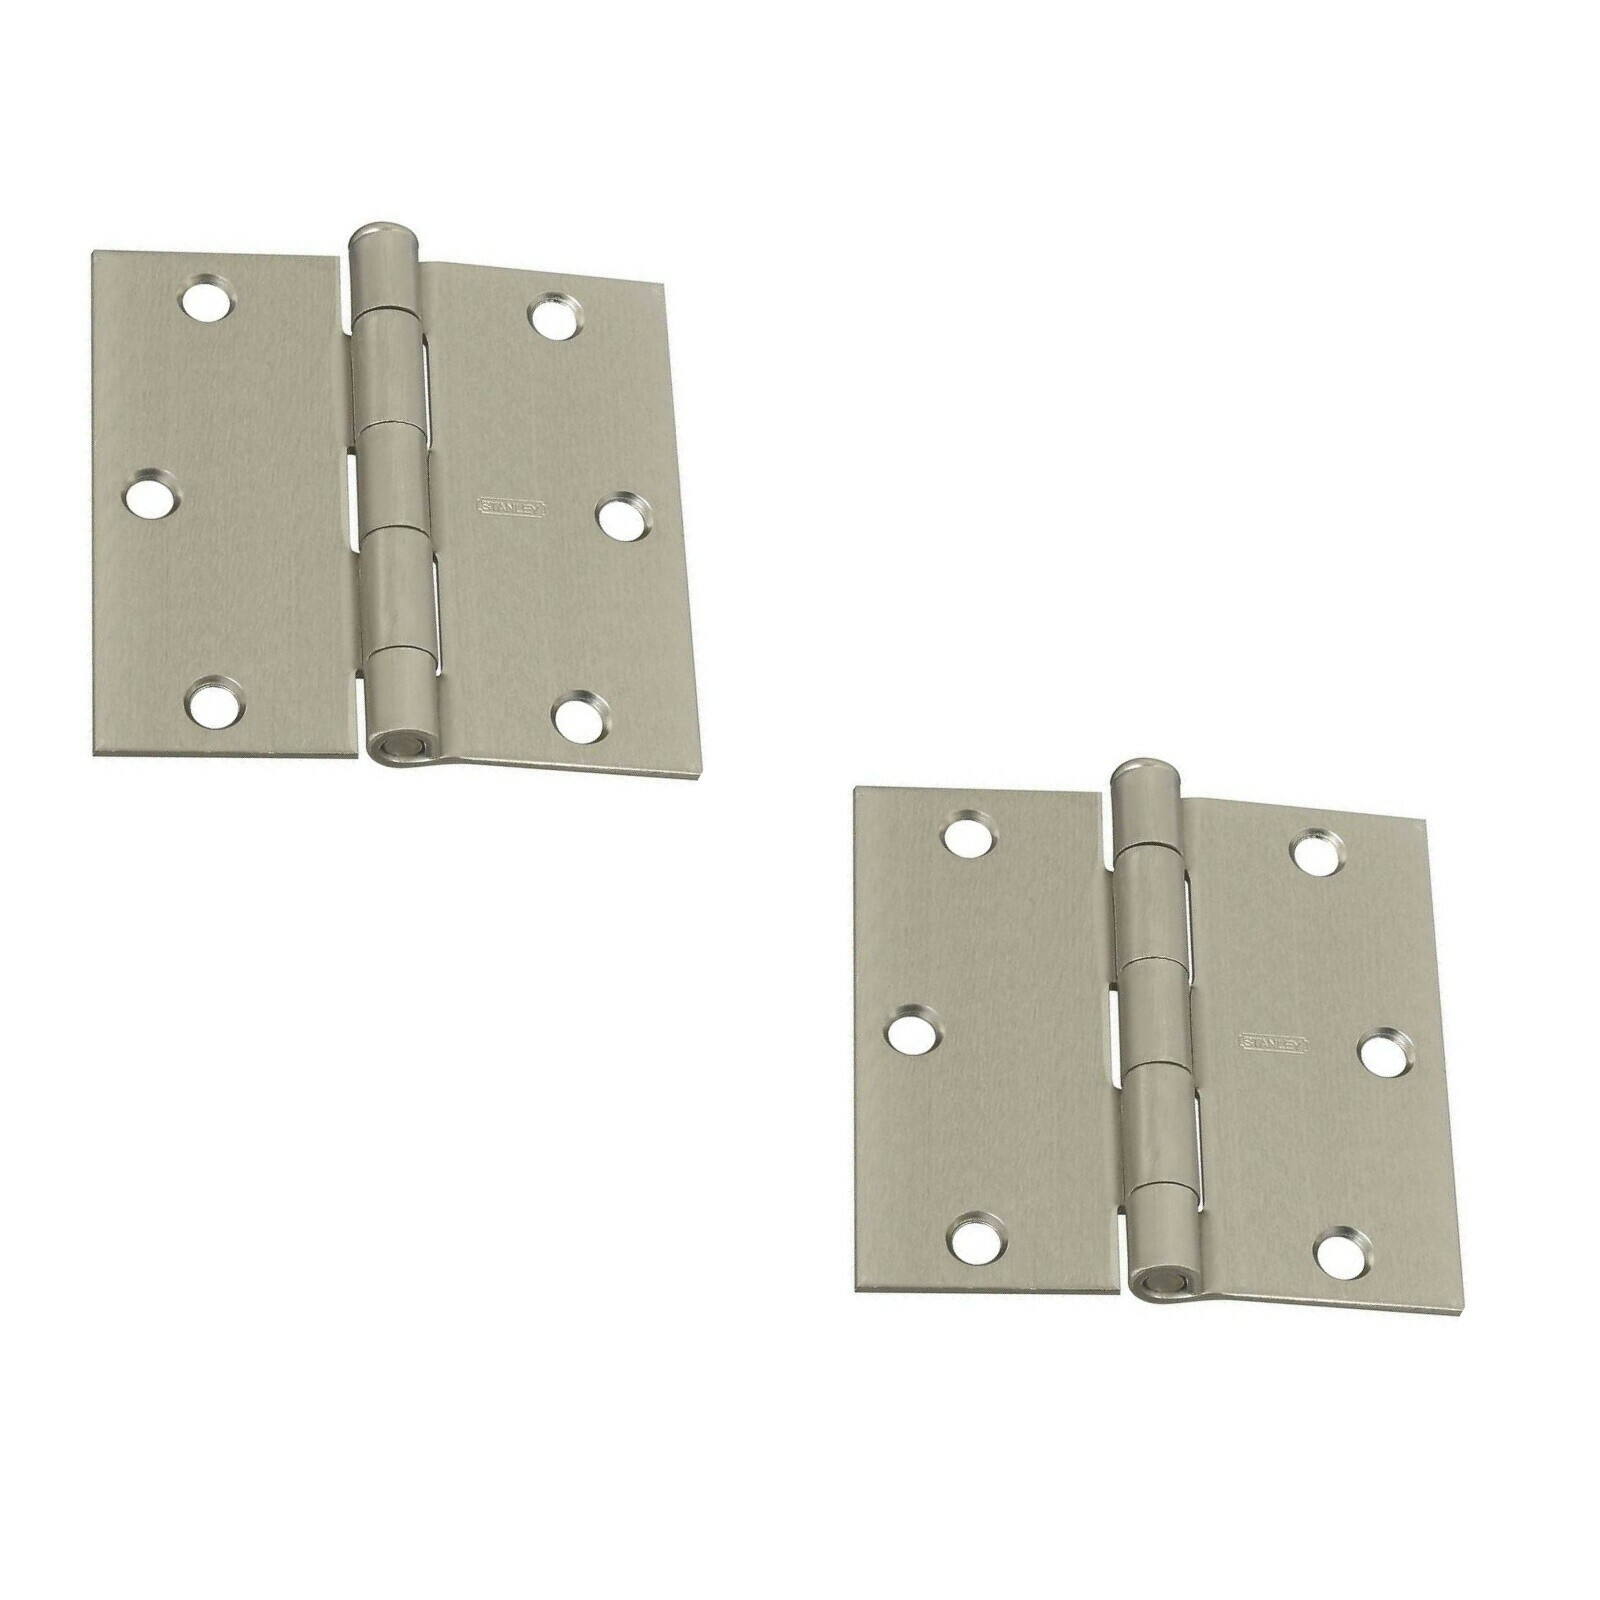 2 pack Stanley Hardware S808-063 V8027 Door Hinges in Satin Nickel